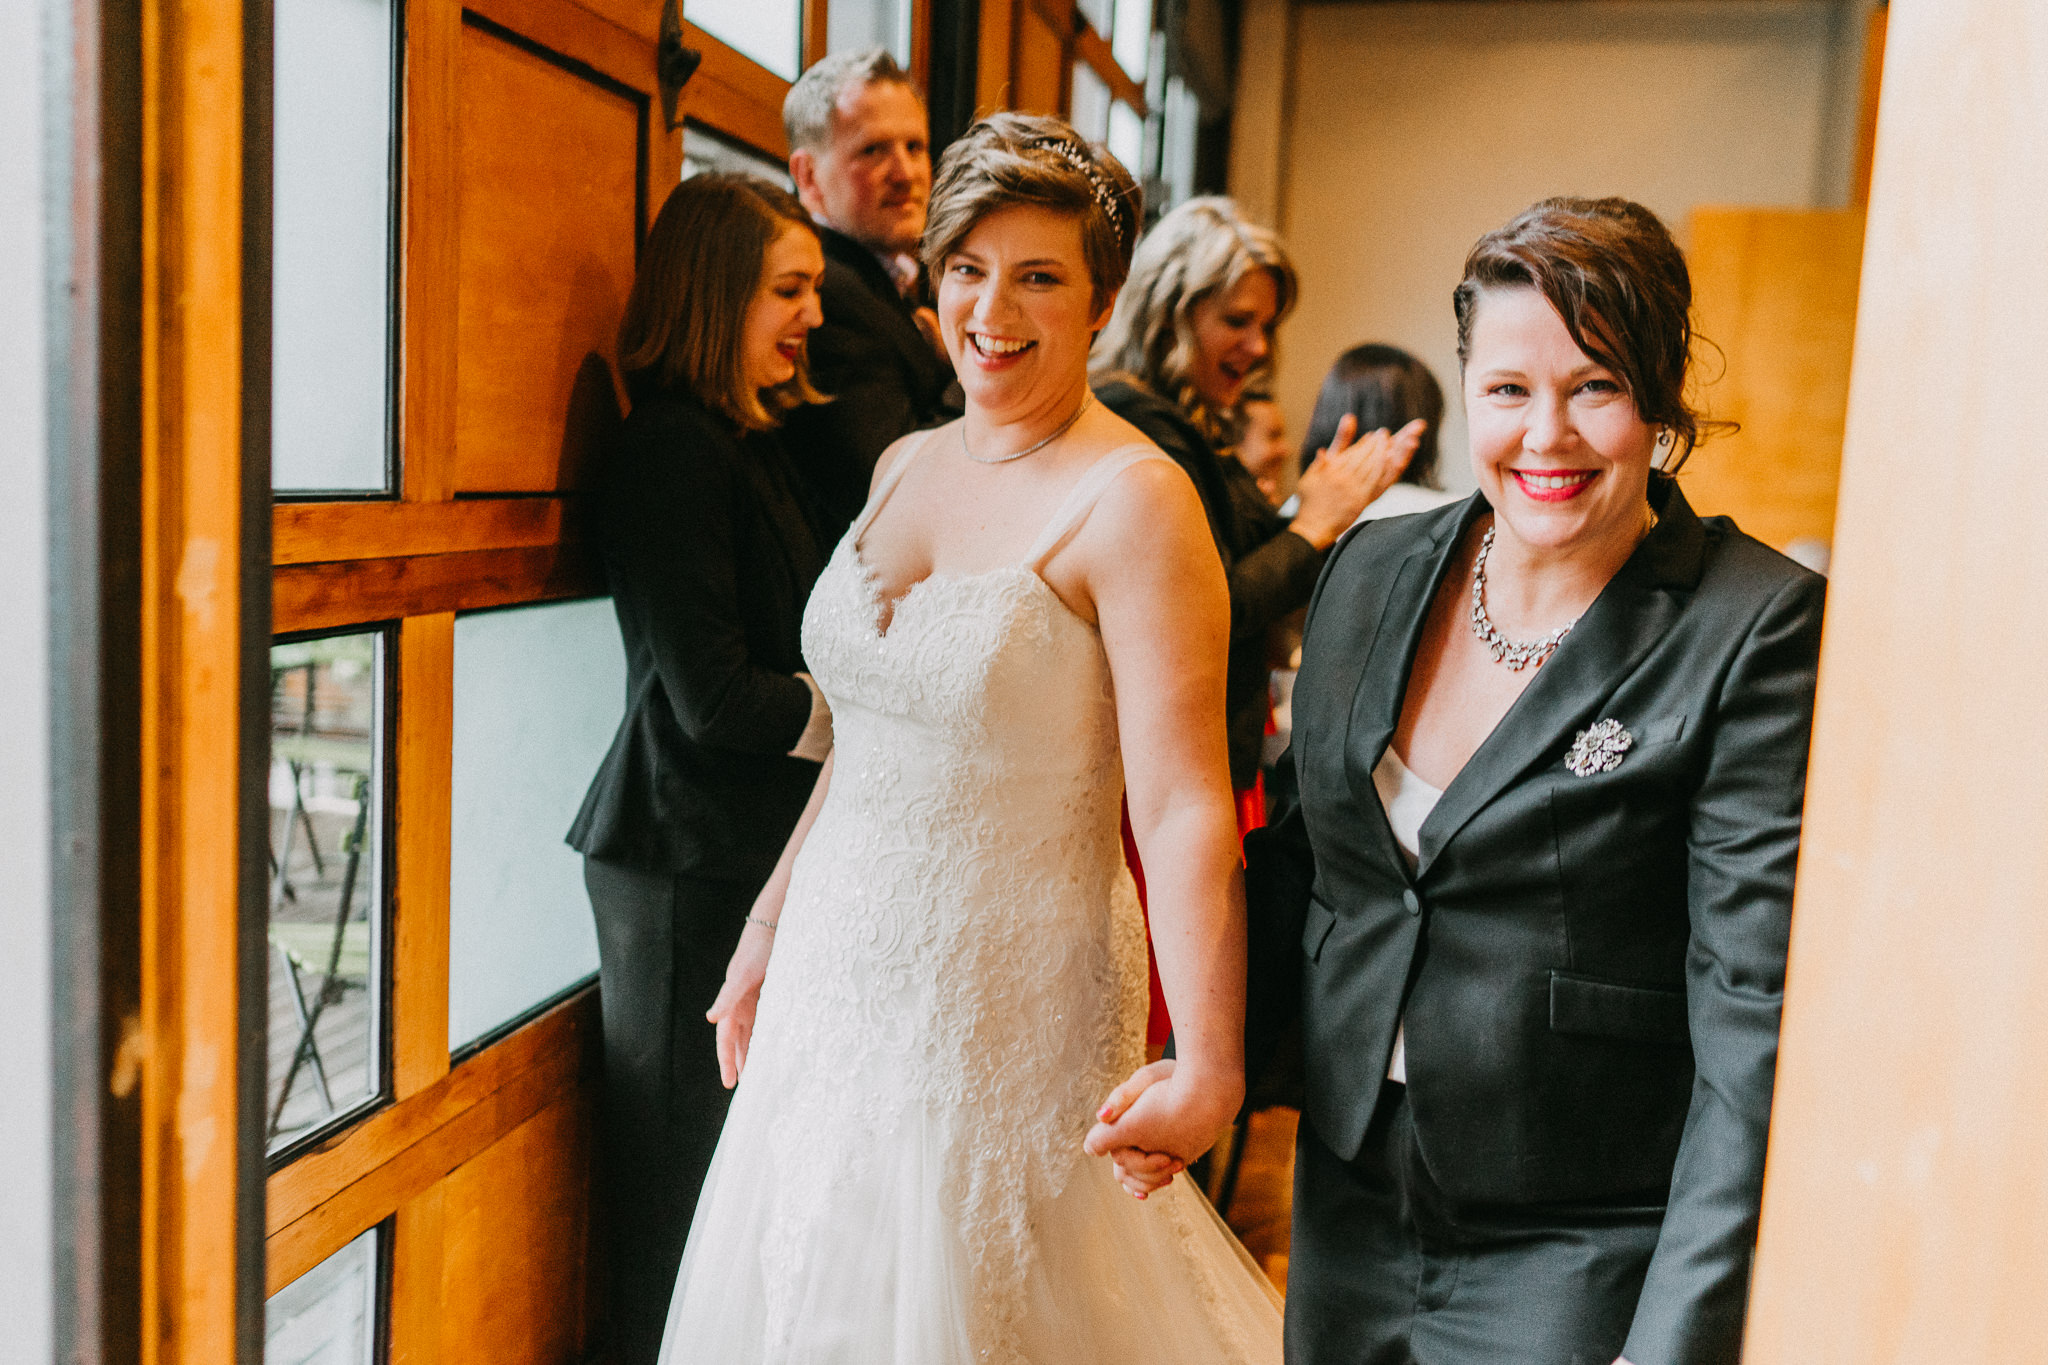 Married lesbians wedding photography